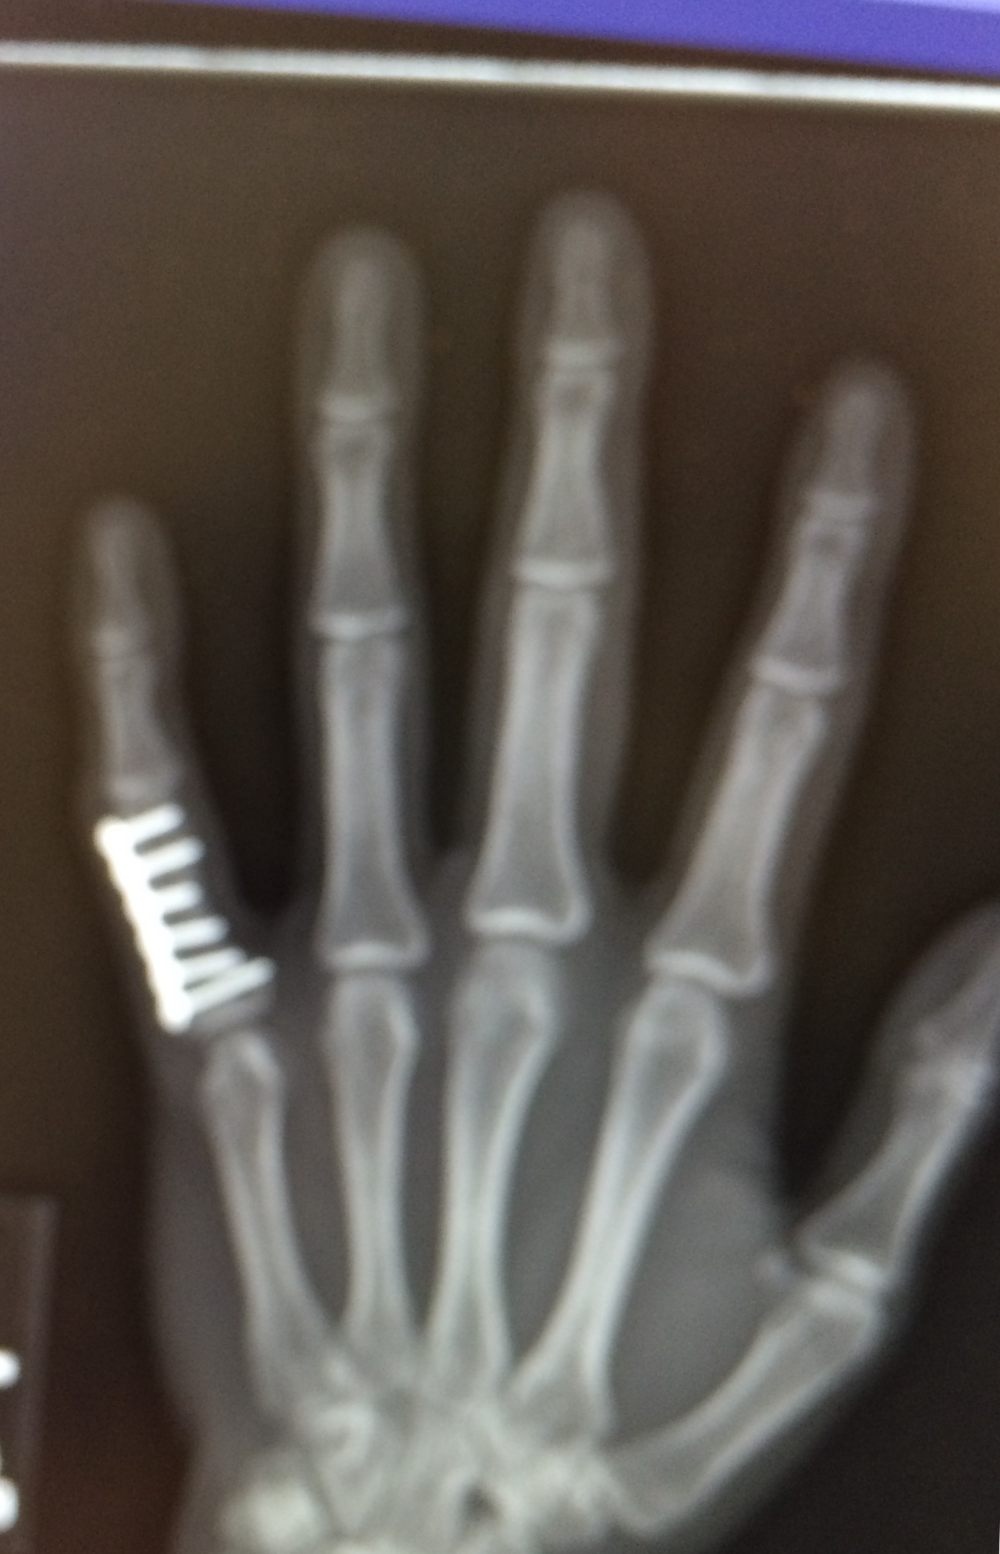 reconstructed finger